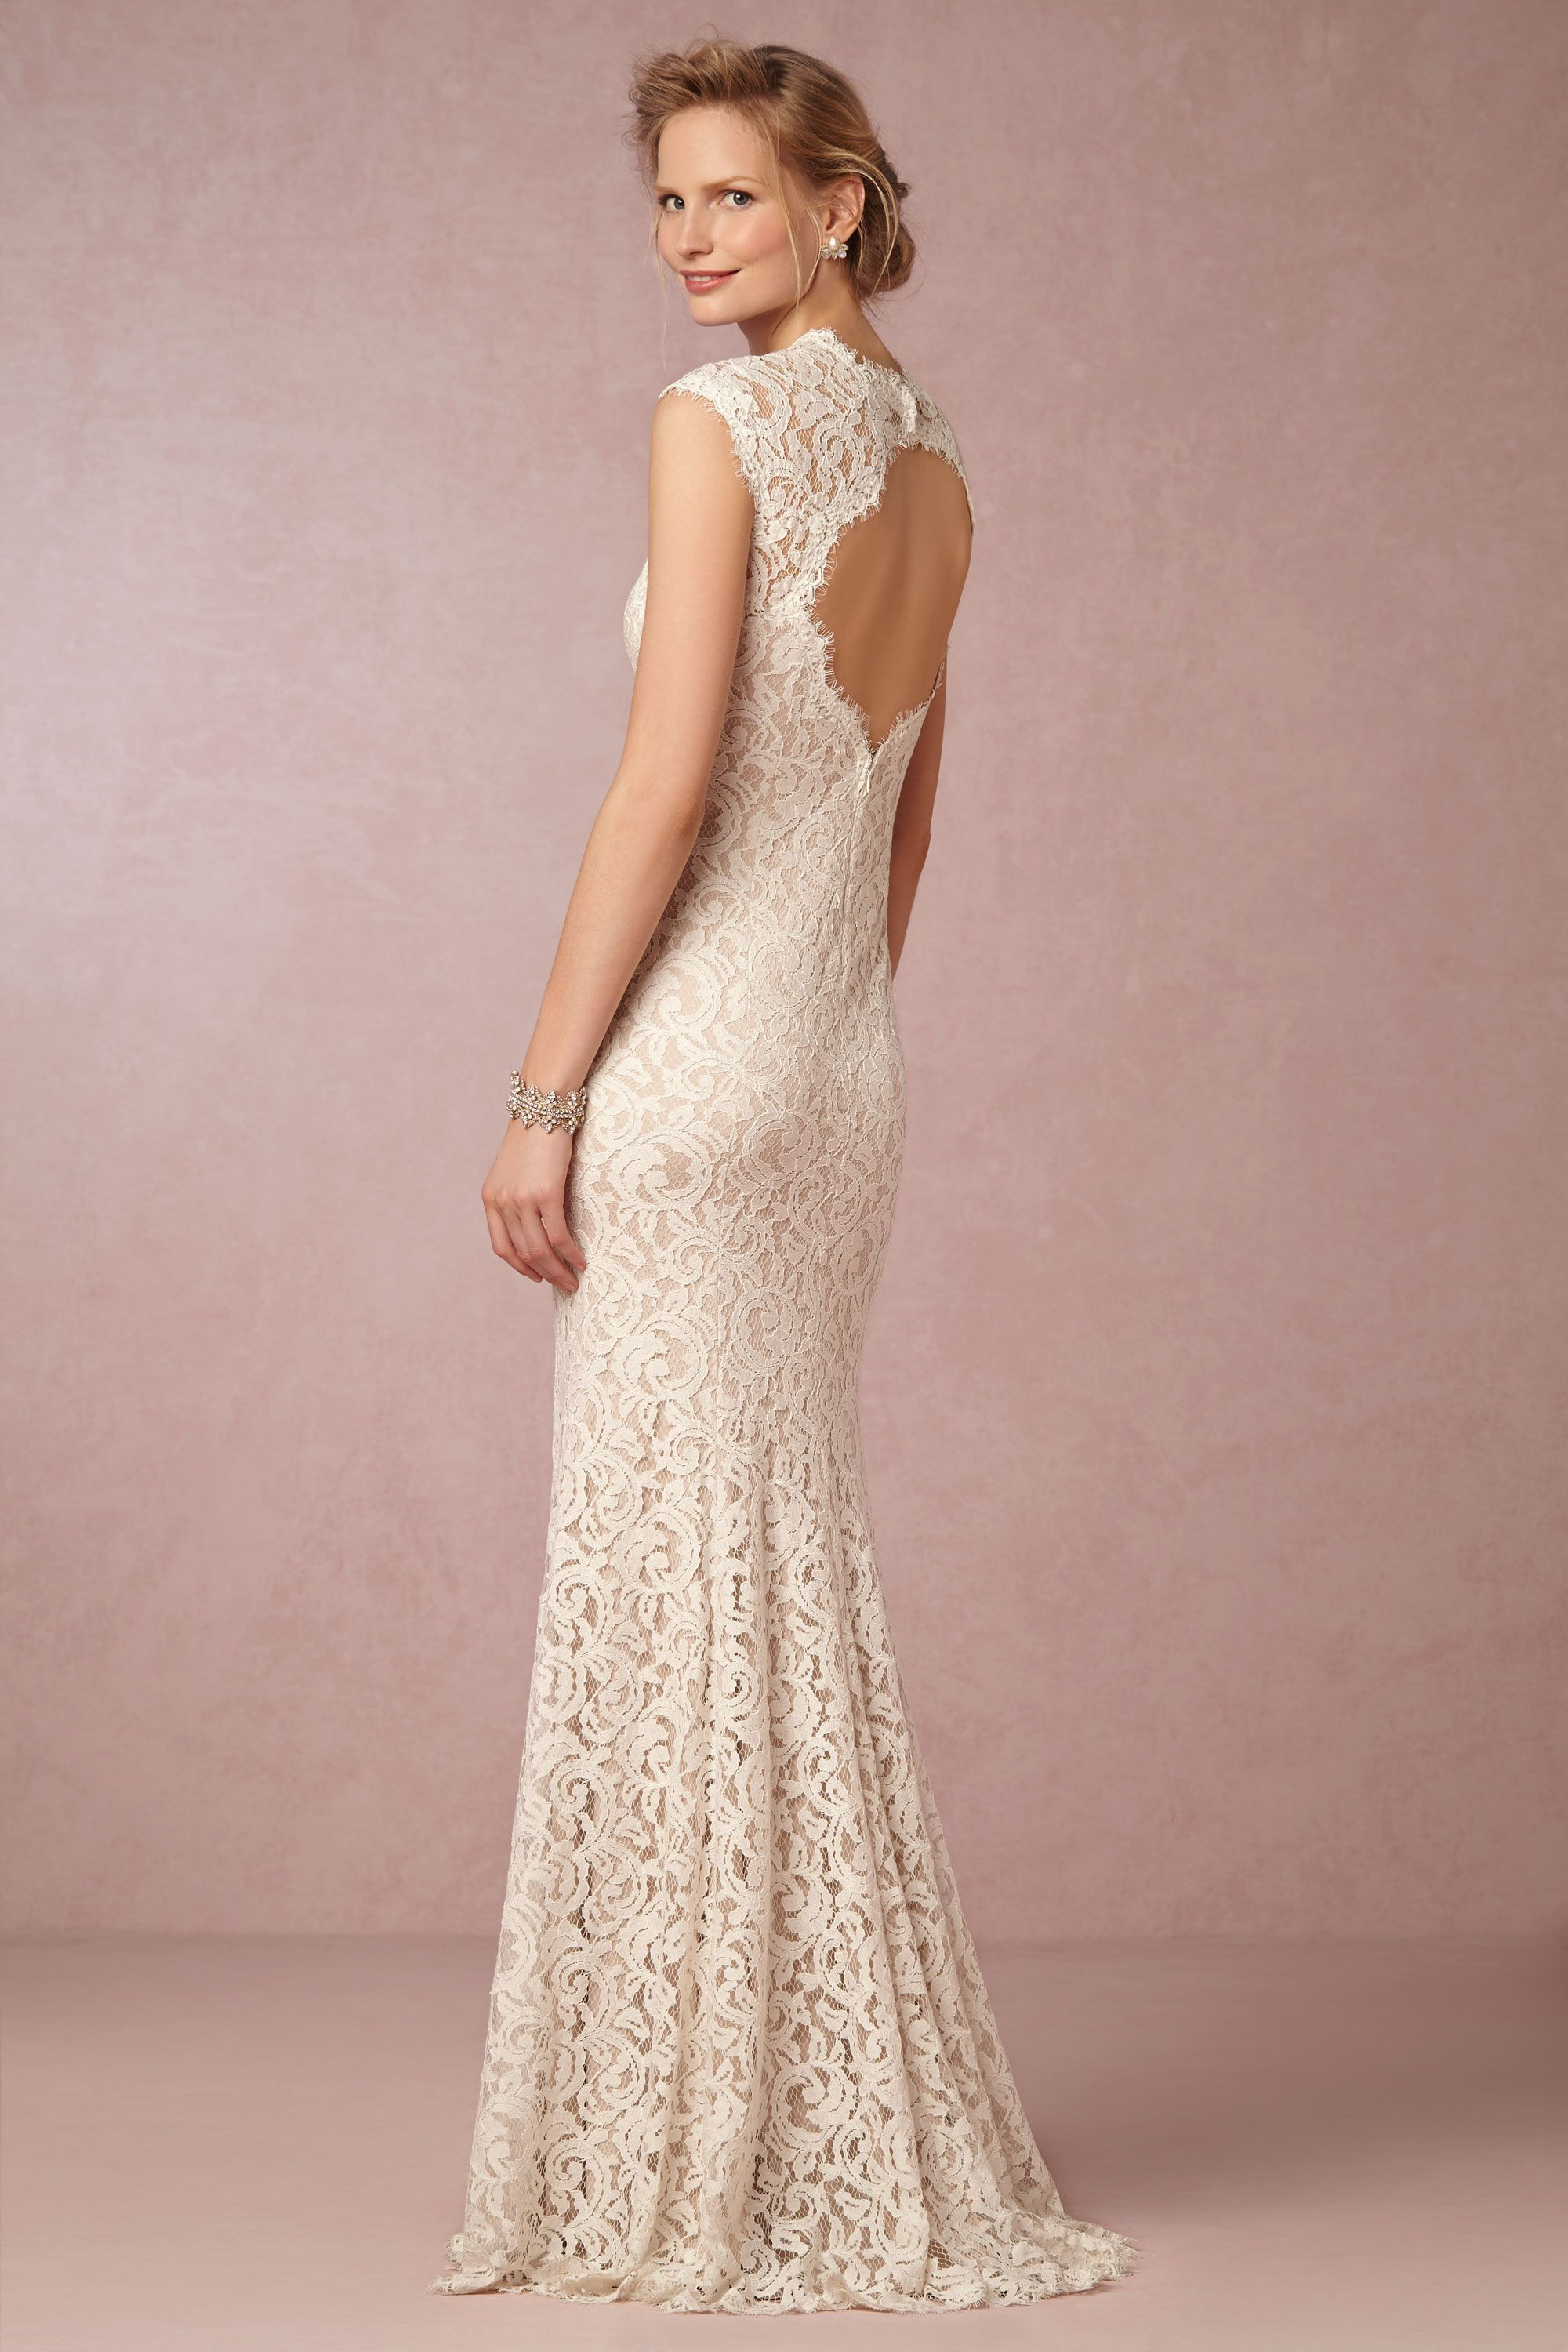 Marivana Lace Gown | #welcometowilliams | Pinterest